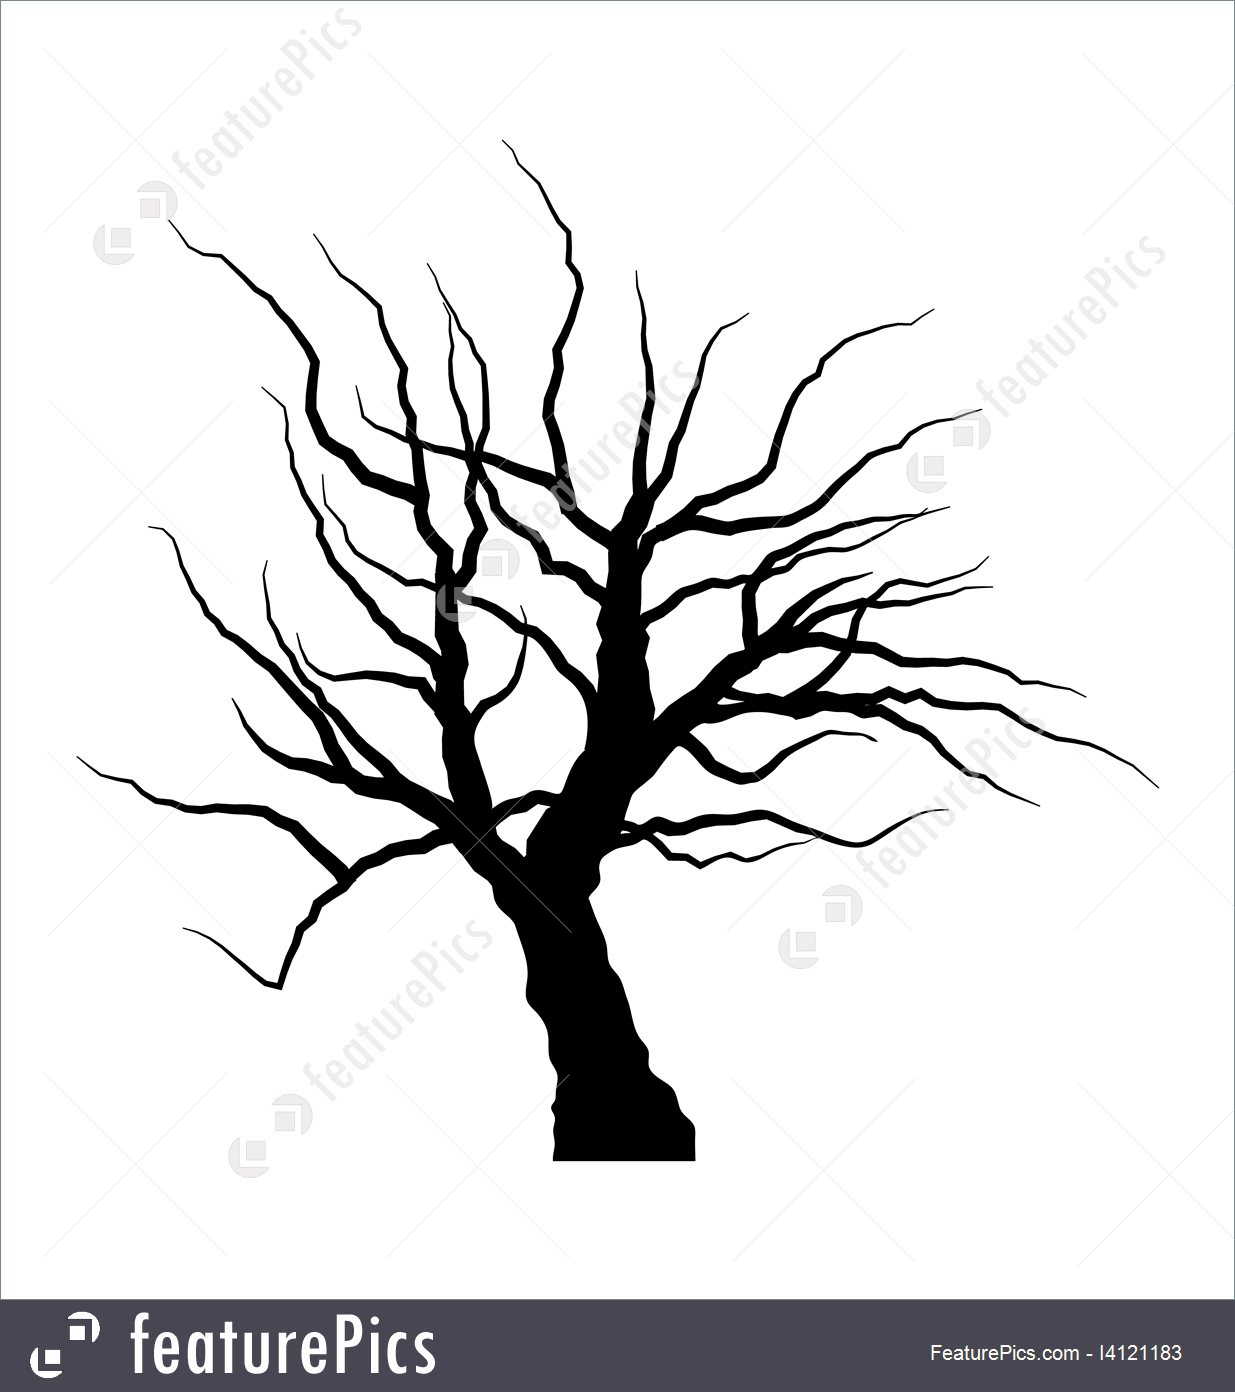 1235x1392 Illustration Of Dead Tree Without Leaves